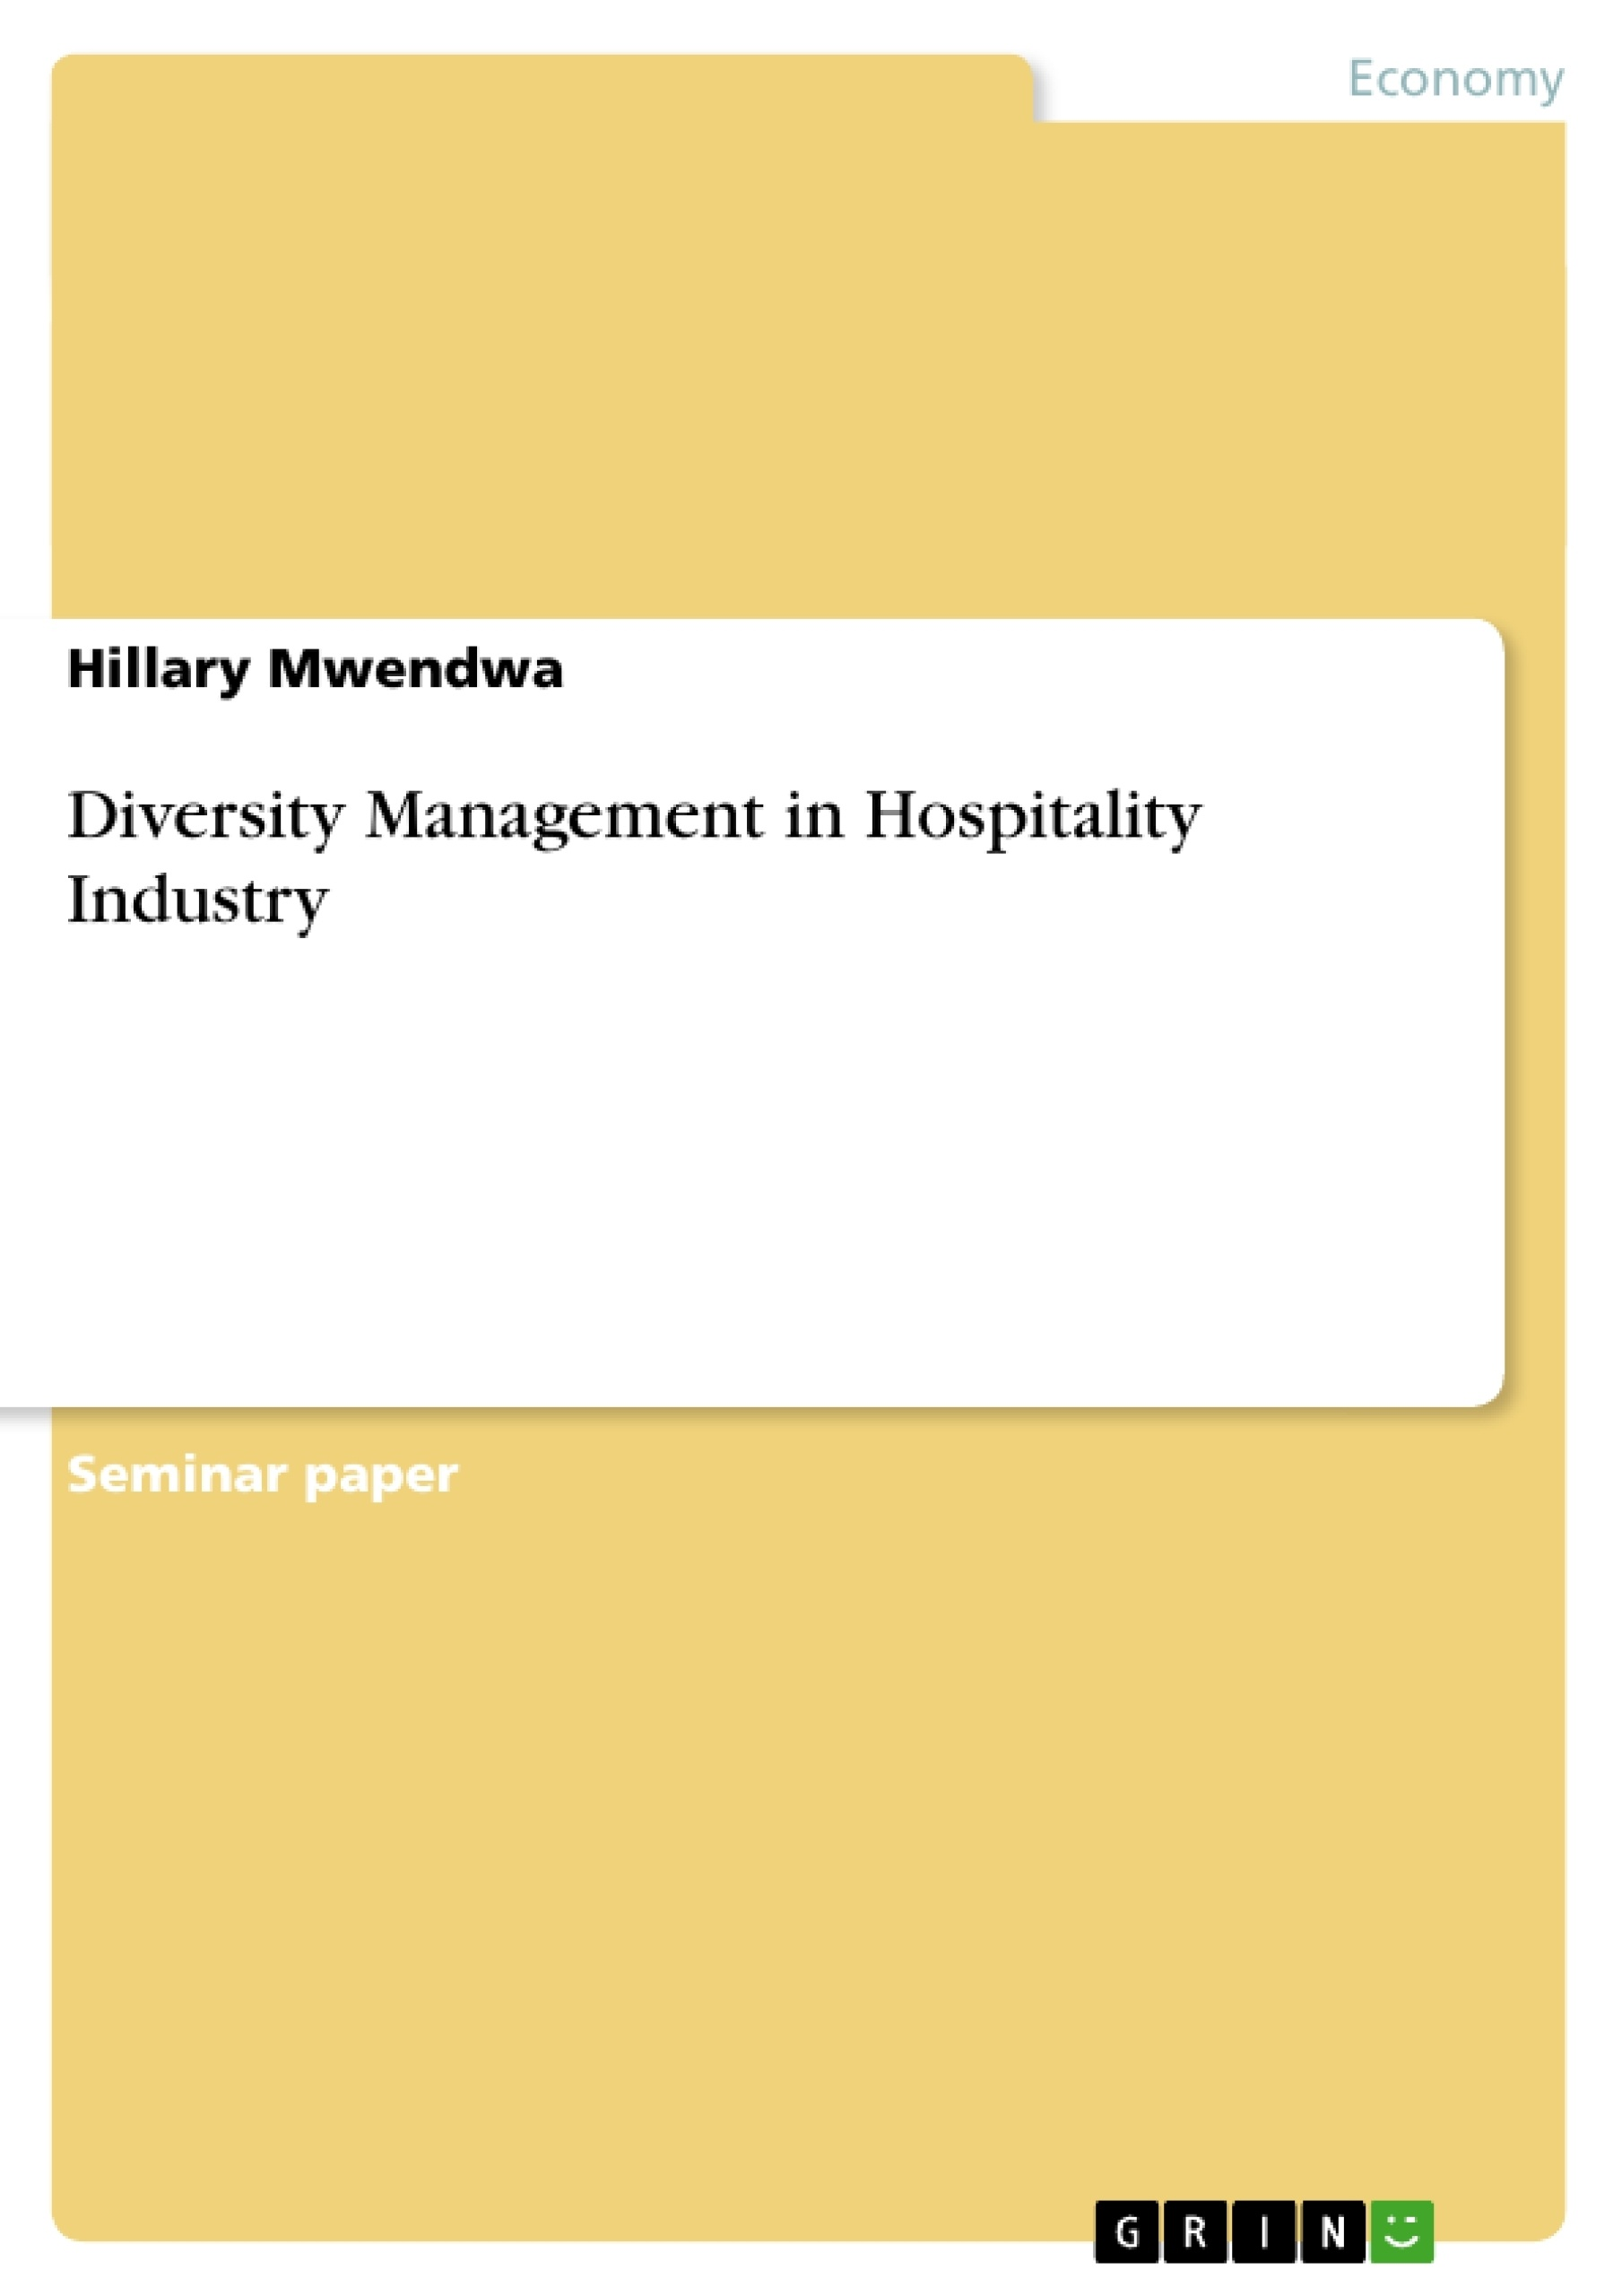 Title: Diversity Management in Hospitality Industry